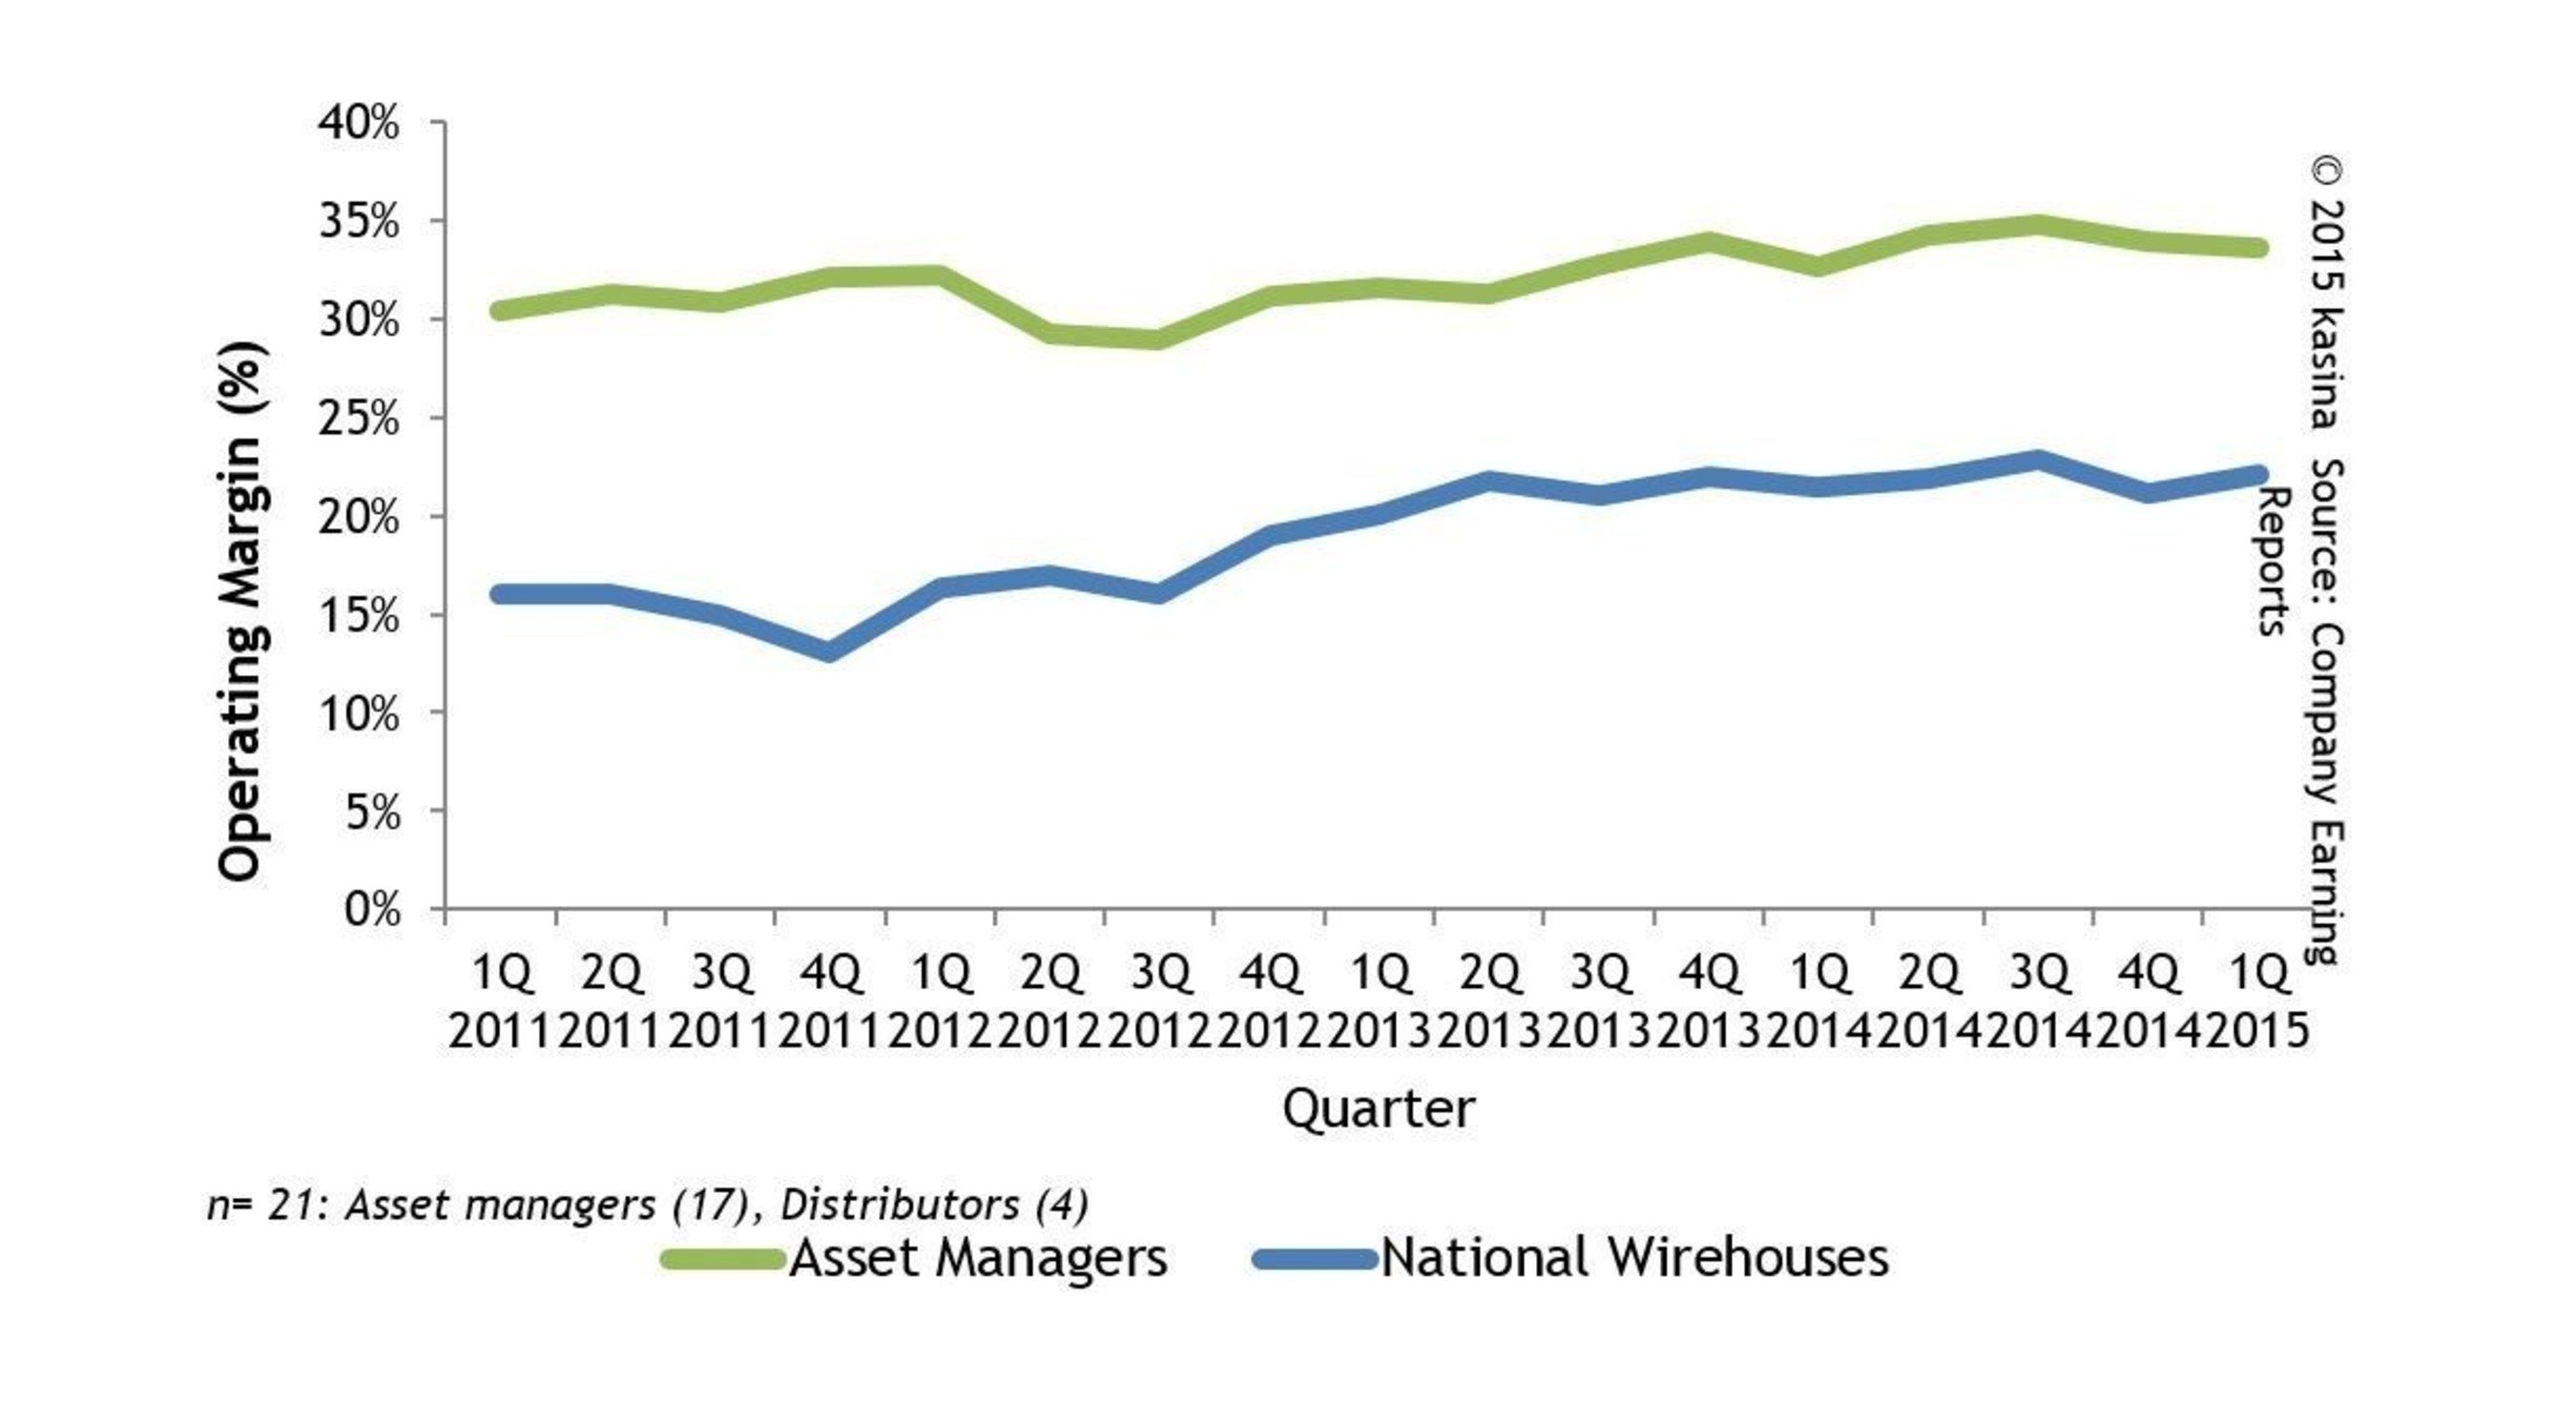 Asset Manager Financials Largely Positive In First Quarter According To kasina Report